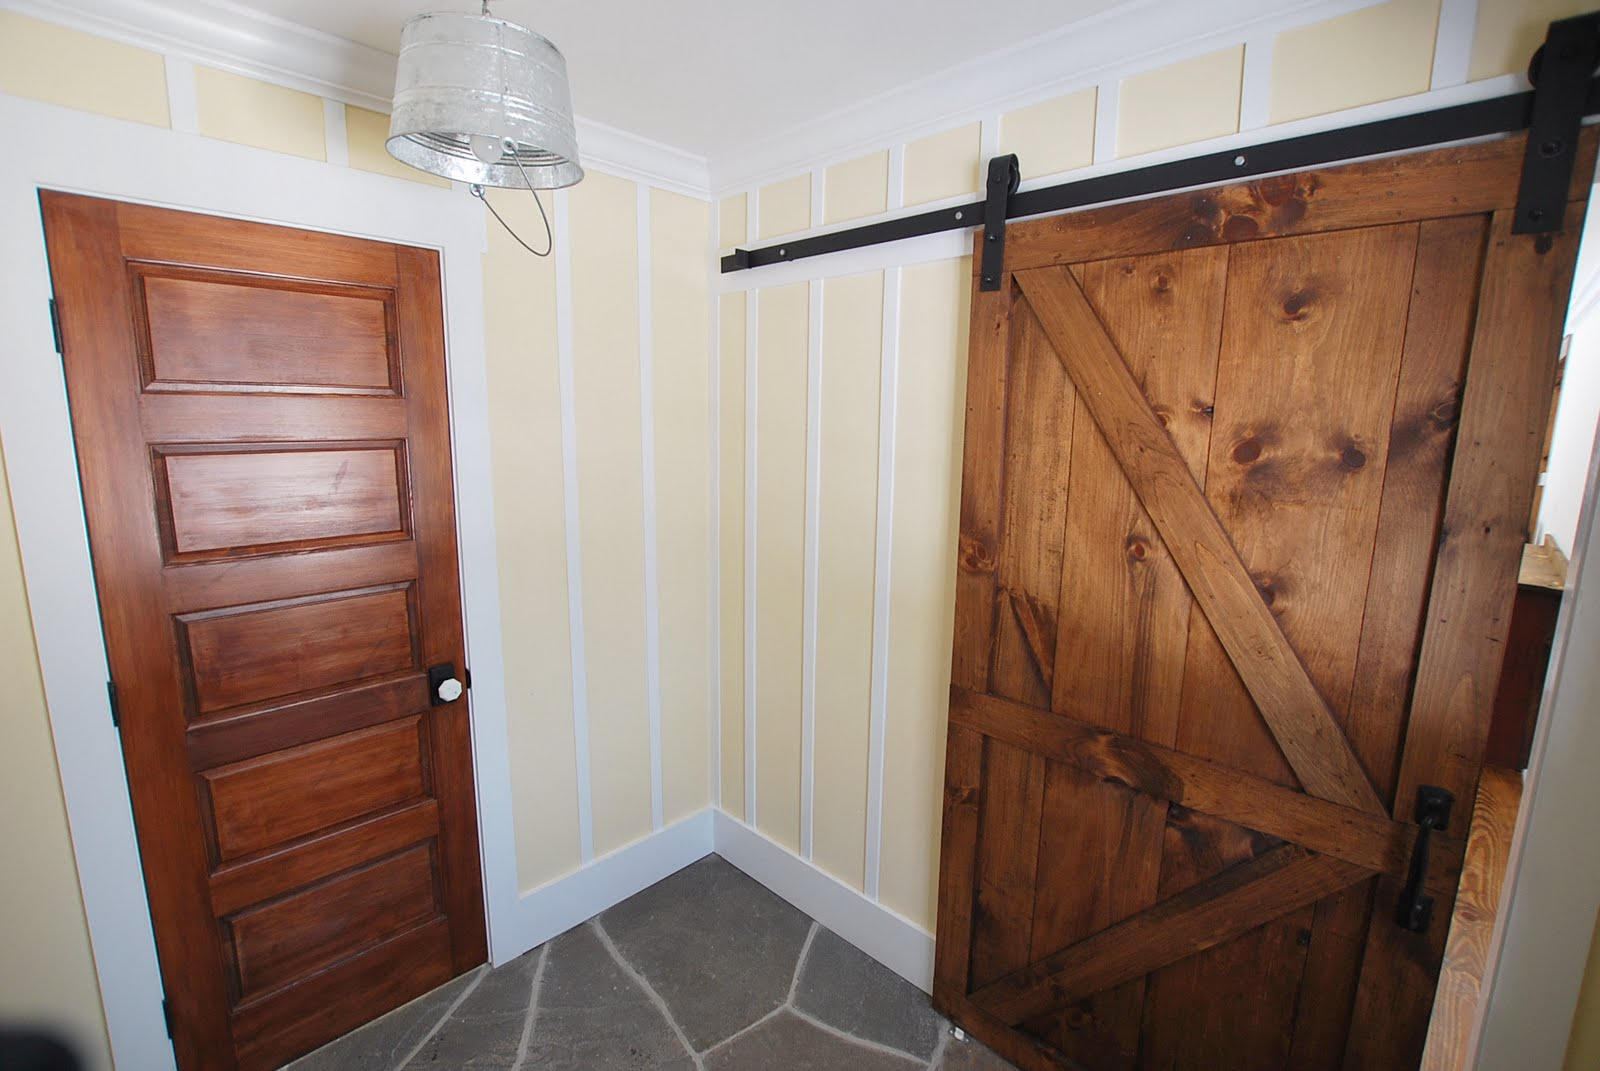 Interior doors for mobile home look great when made of real hardwood